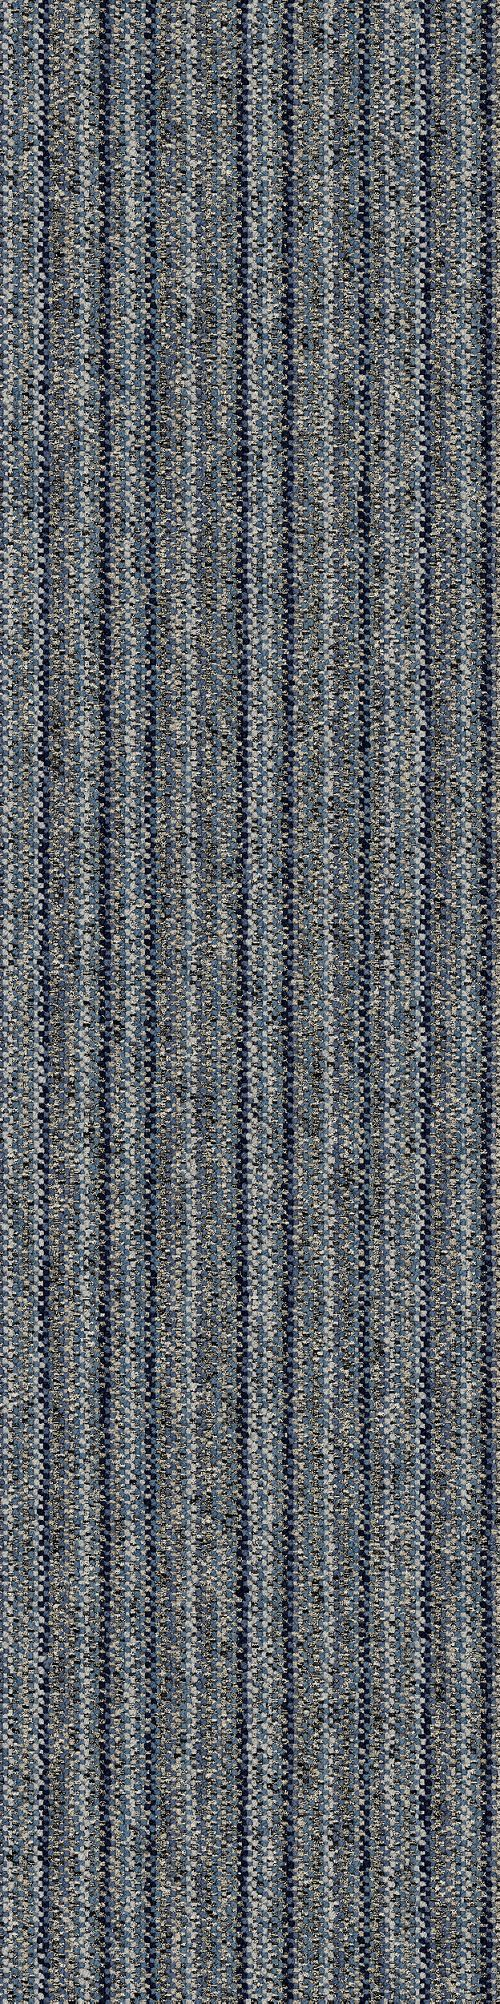 Interface carpet tile ww865 color name moorland warp variant 2 interface carpet tile ww865 color name moorland warp variant 2 baanklon Choice Image